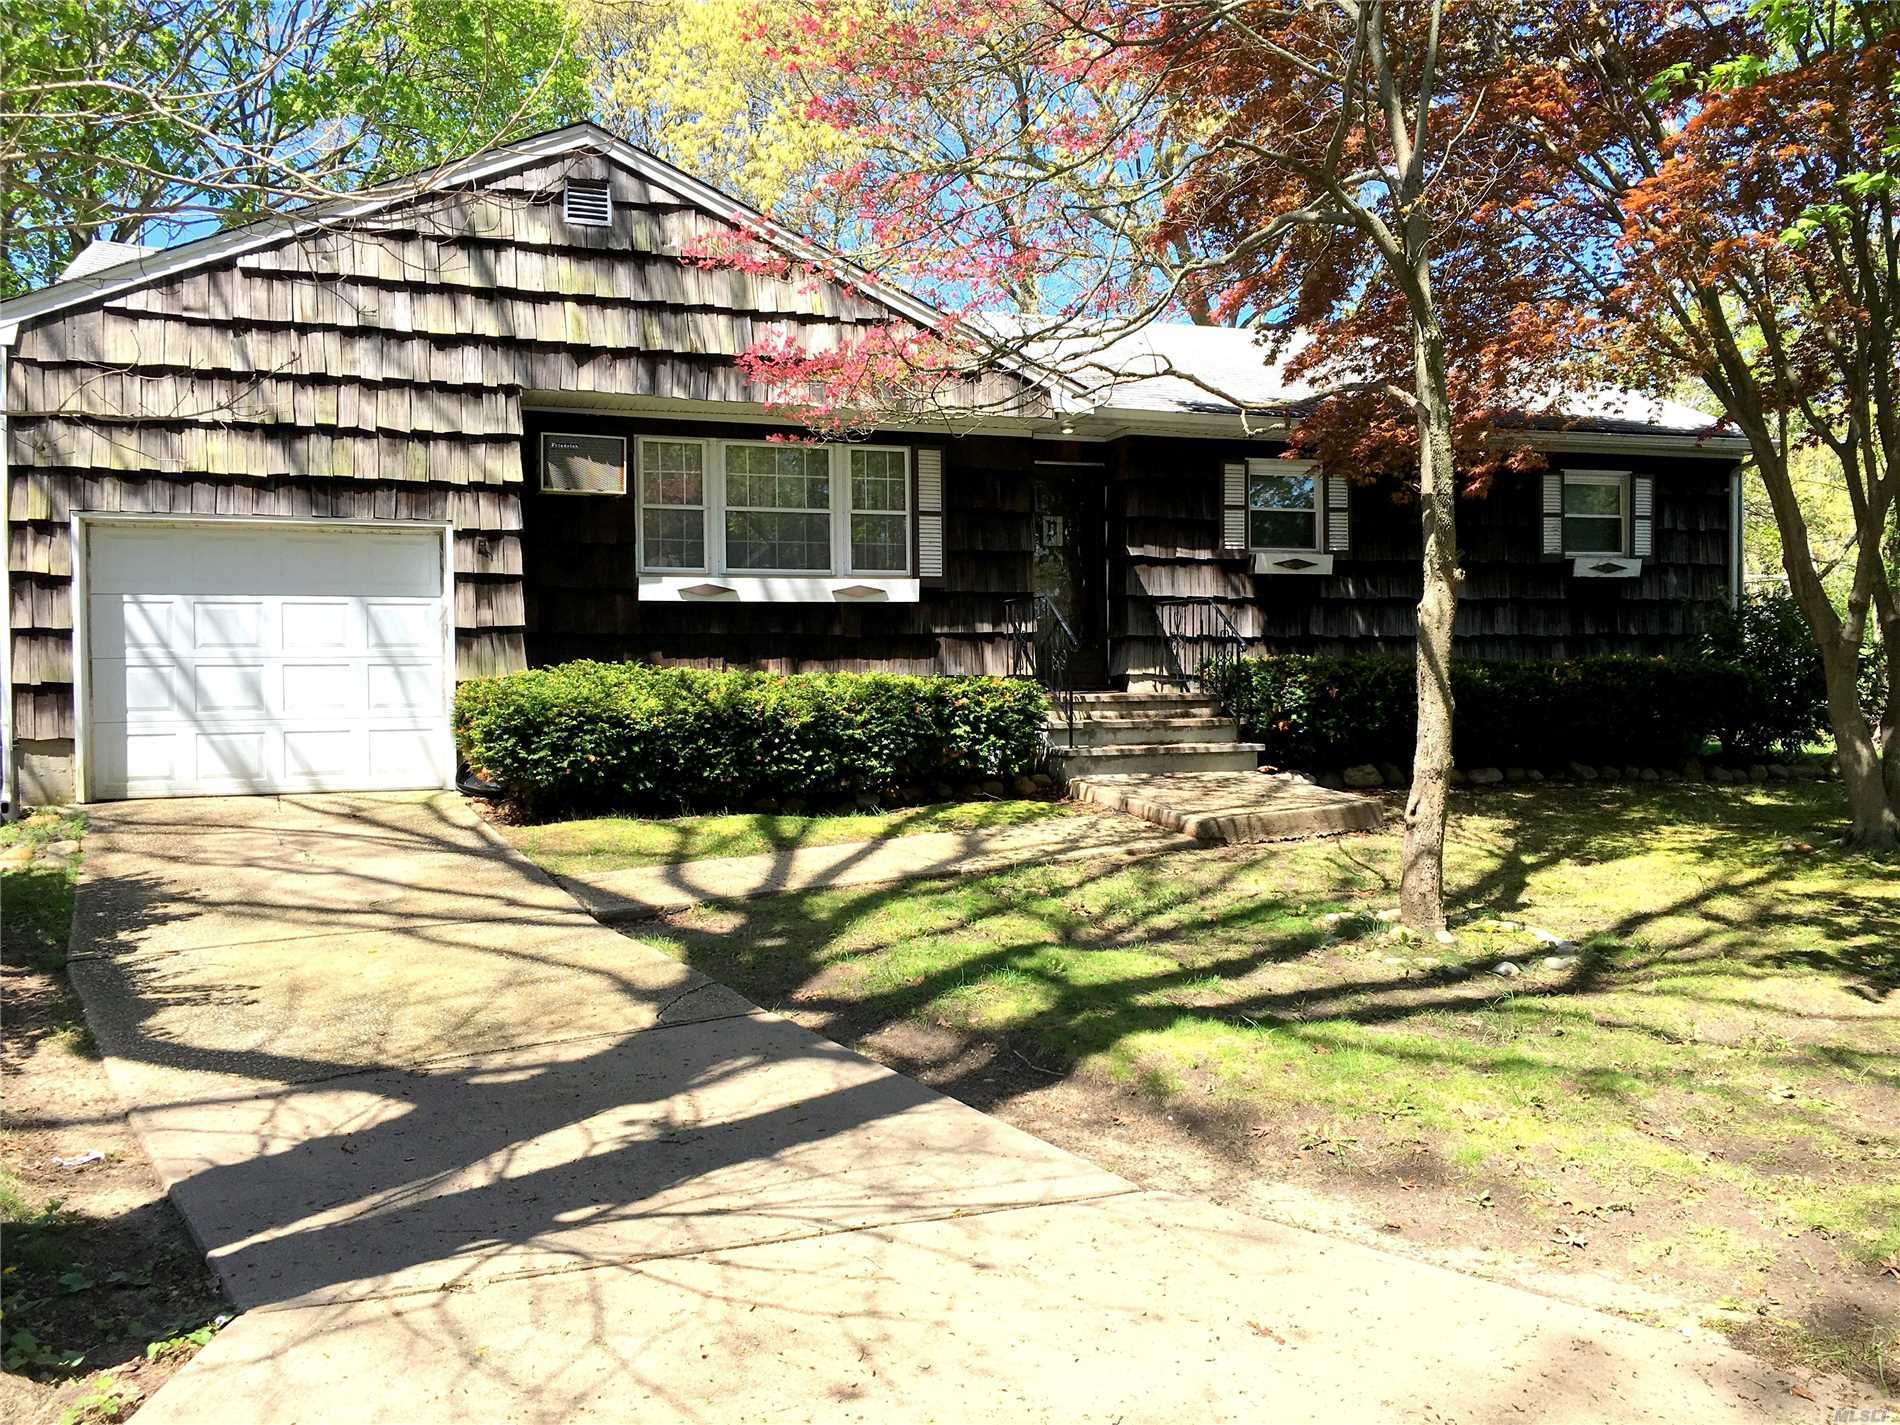 Well maintained and Pride of ownership through out in the spacious 3 bedroom 1 bath Ranch home on tree lined street. Easy access to parkways, most convenient location. Large rooms offer perfect floor plan for entertaining. Nice flat yard with plenty of room for a pool.. Huge basement ready to be finished for added space. Truly a lovely home.. Make it yours!!